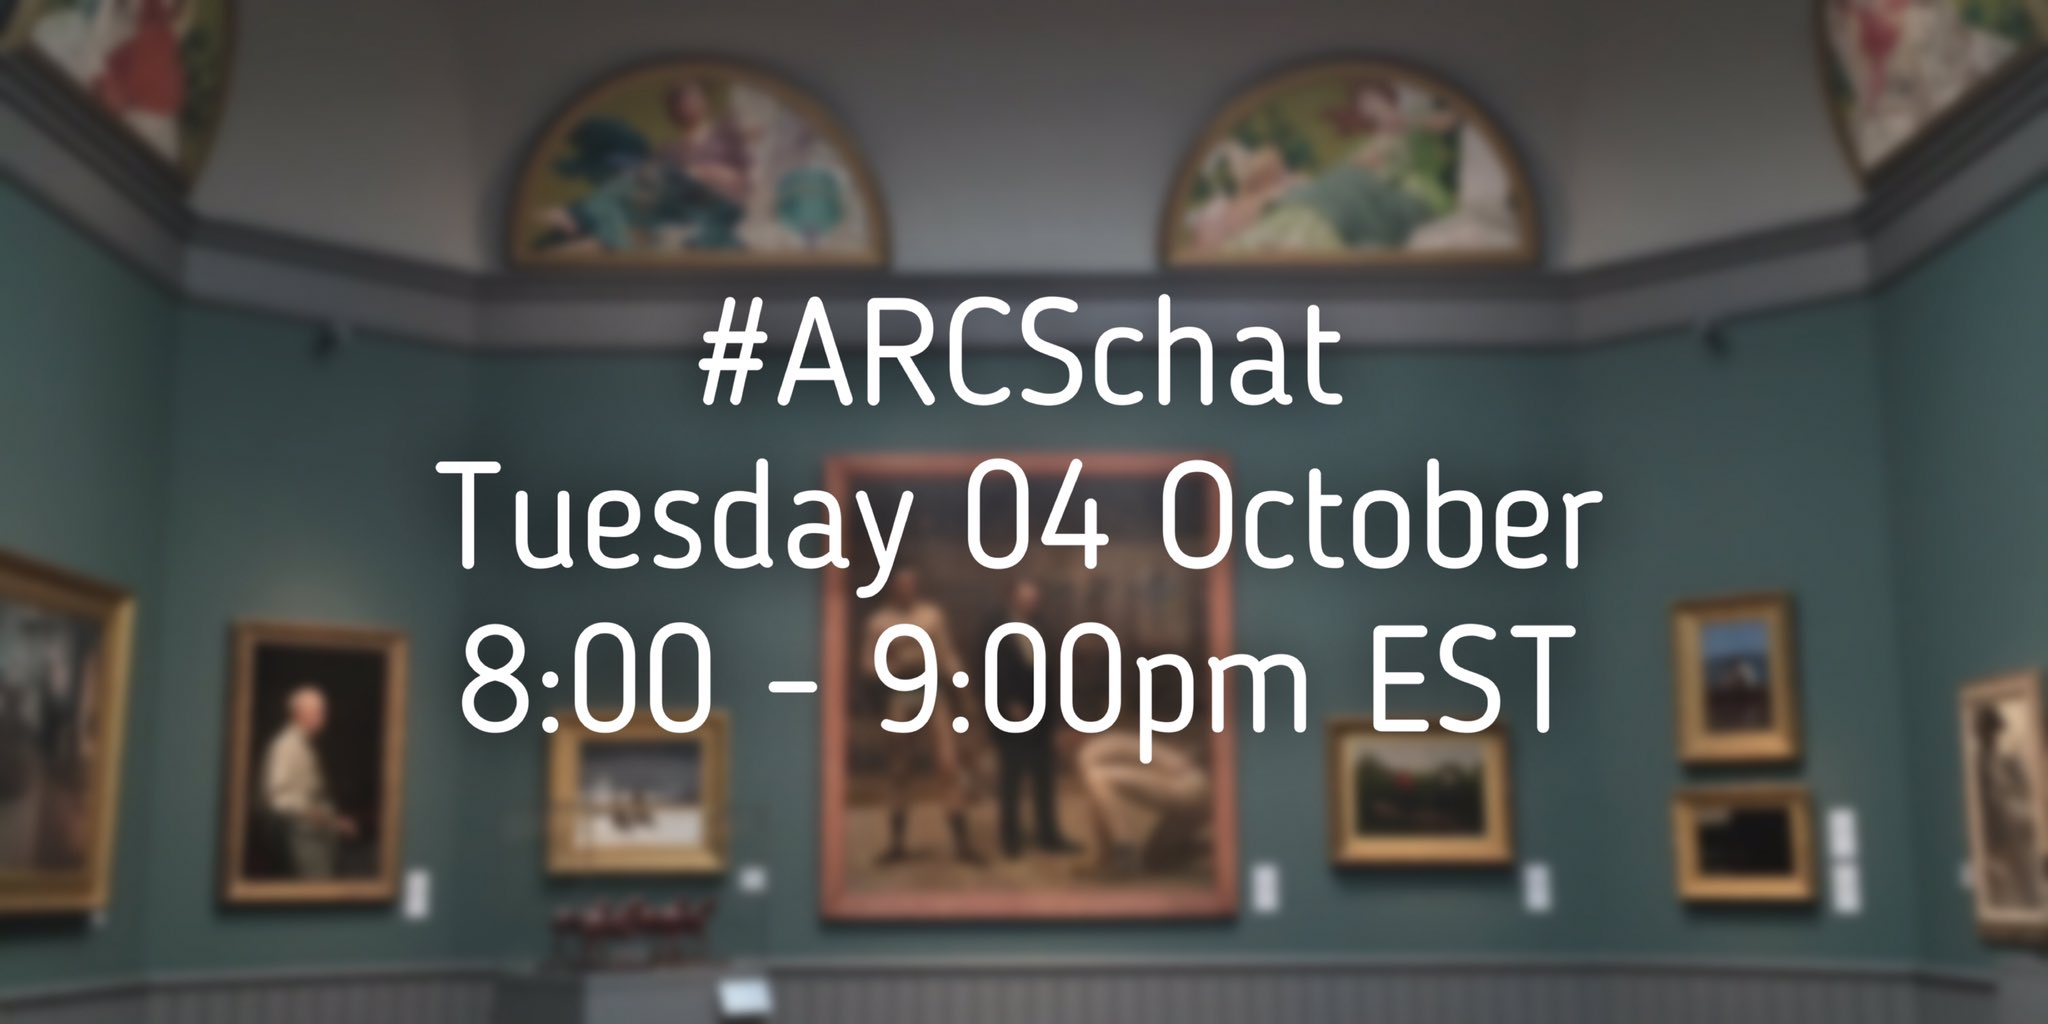 Thumbnail for #ARCSchat 04 October 2016 - Courier Advice, Expectations, and Experiences.